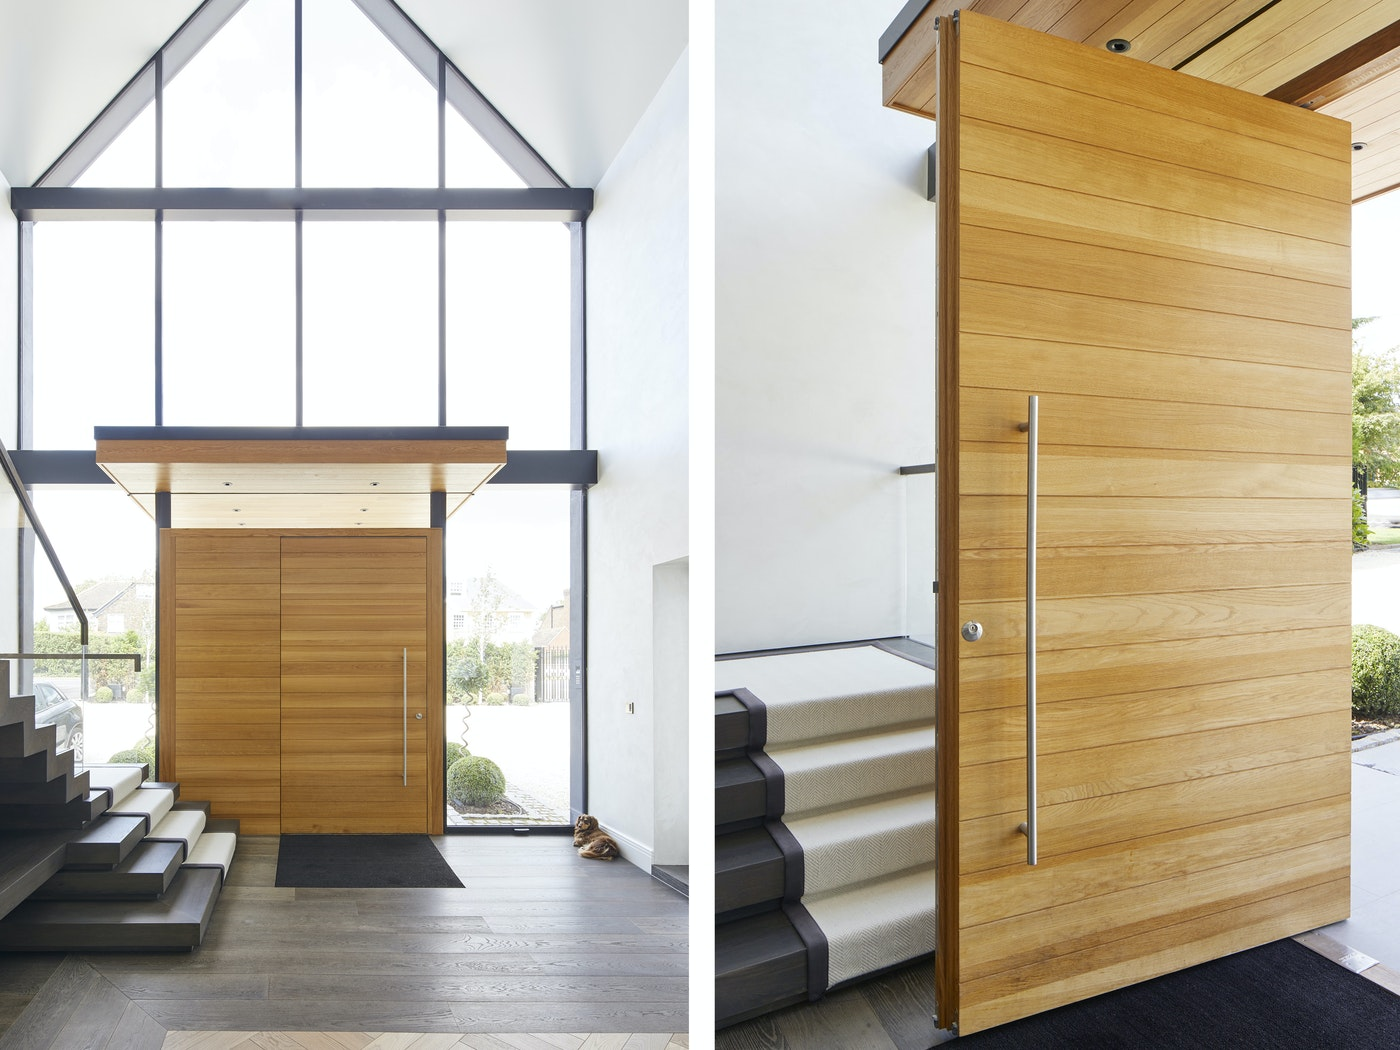 The glass allows the hall to be flooded with light, the door is fitted with an option 8 handle